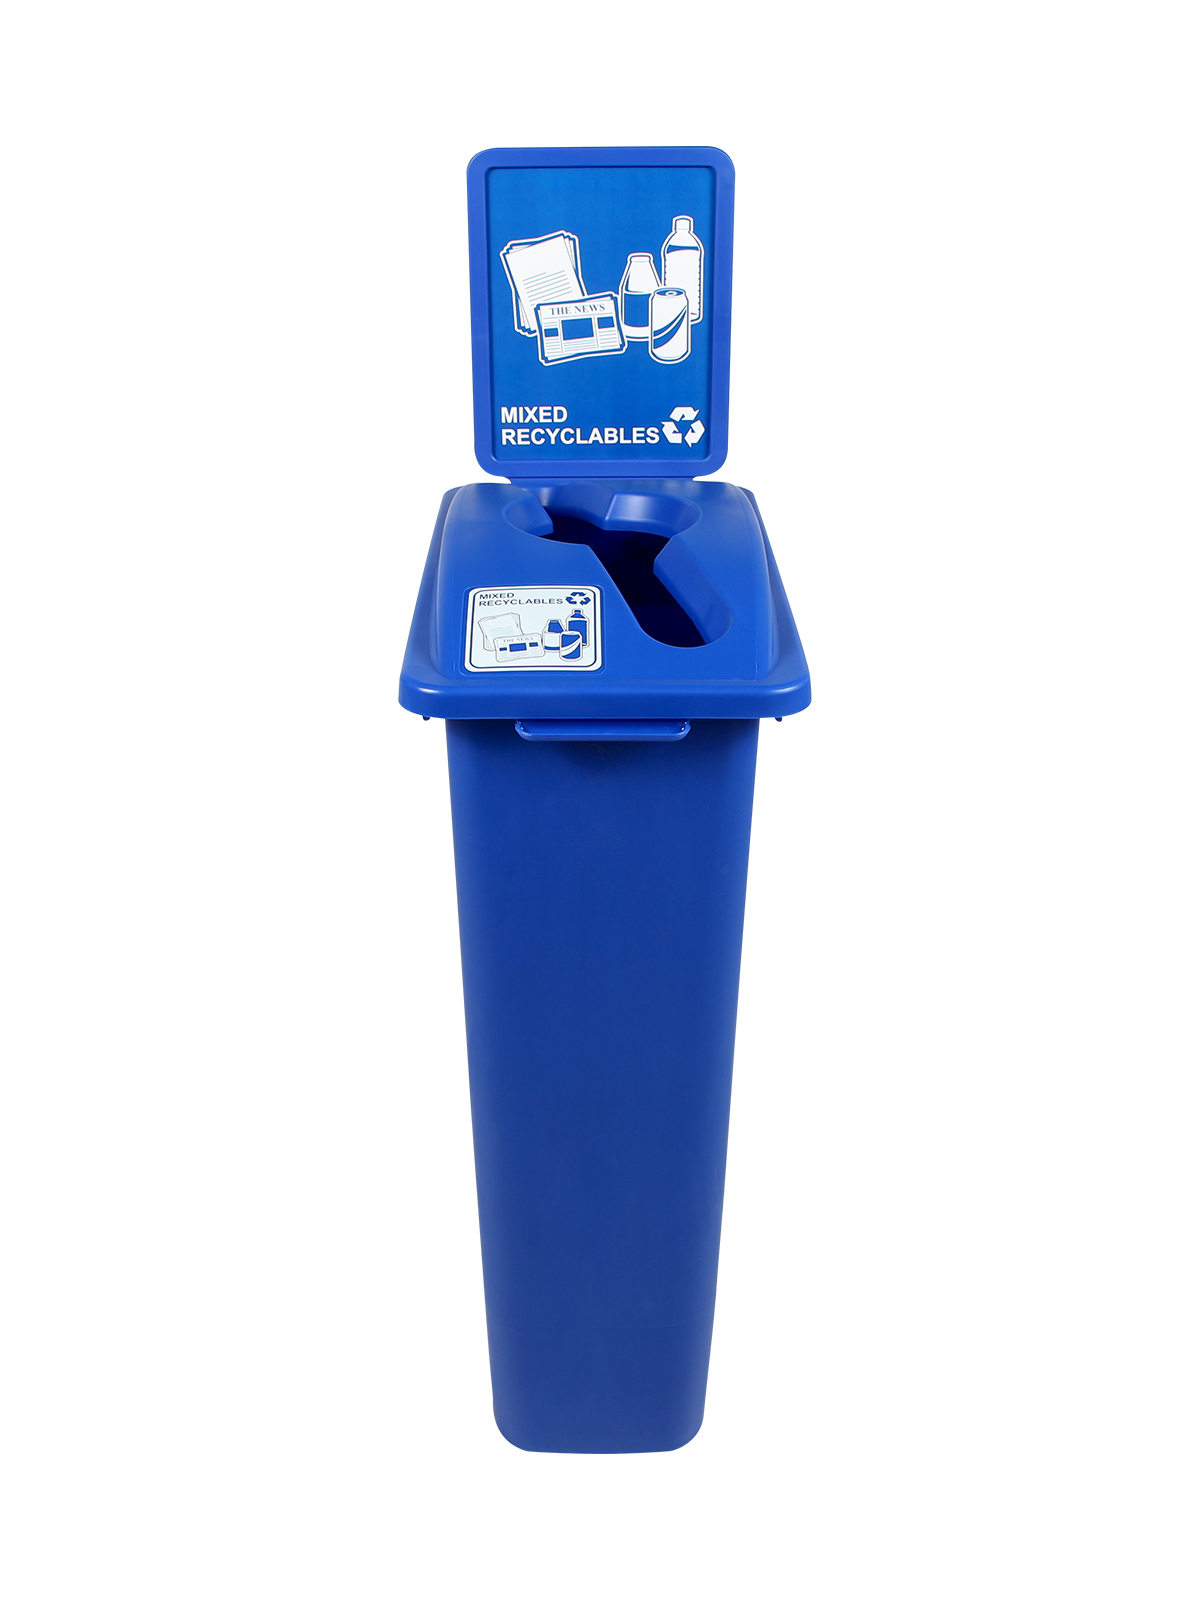 KIT WW 30 SINGLE - BDY/LID/SF - BLUE MIXED RECYCLABLES